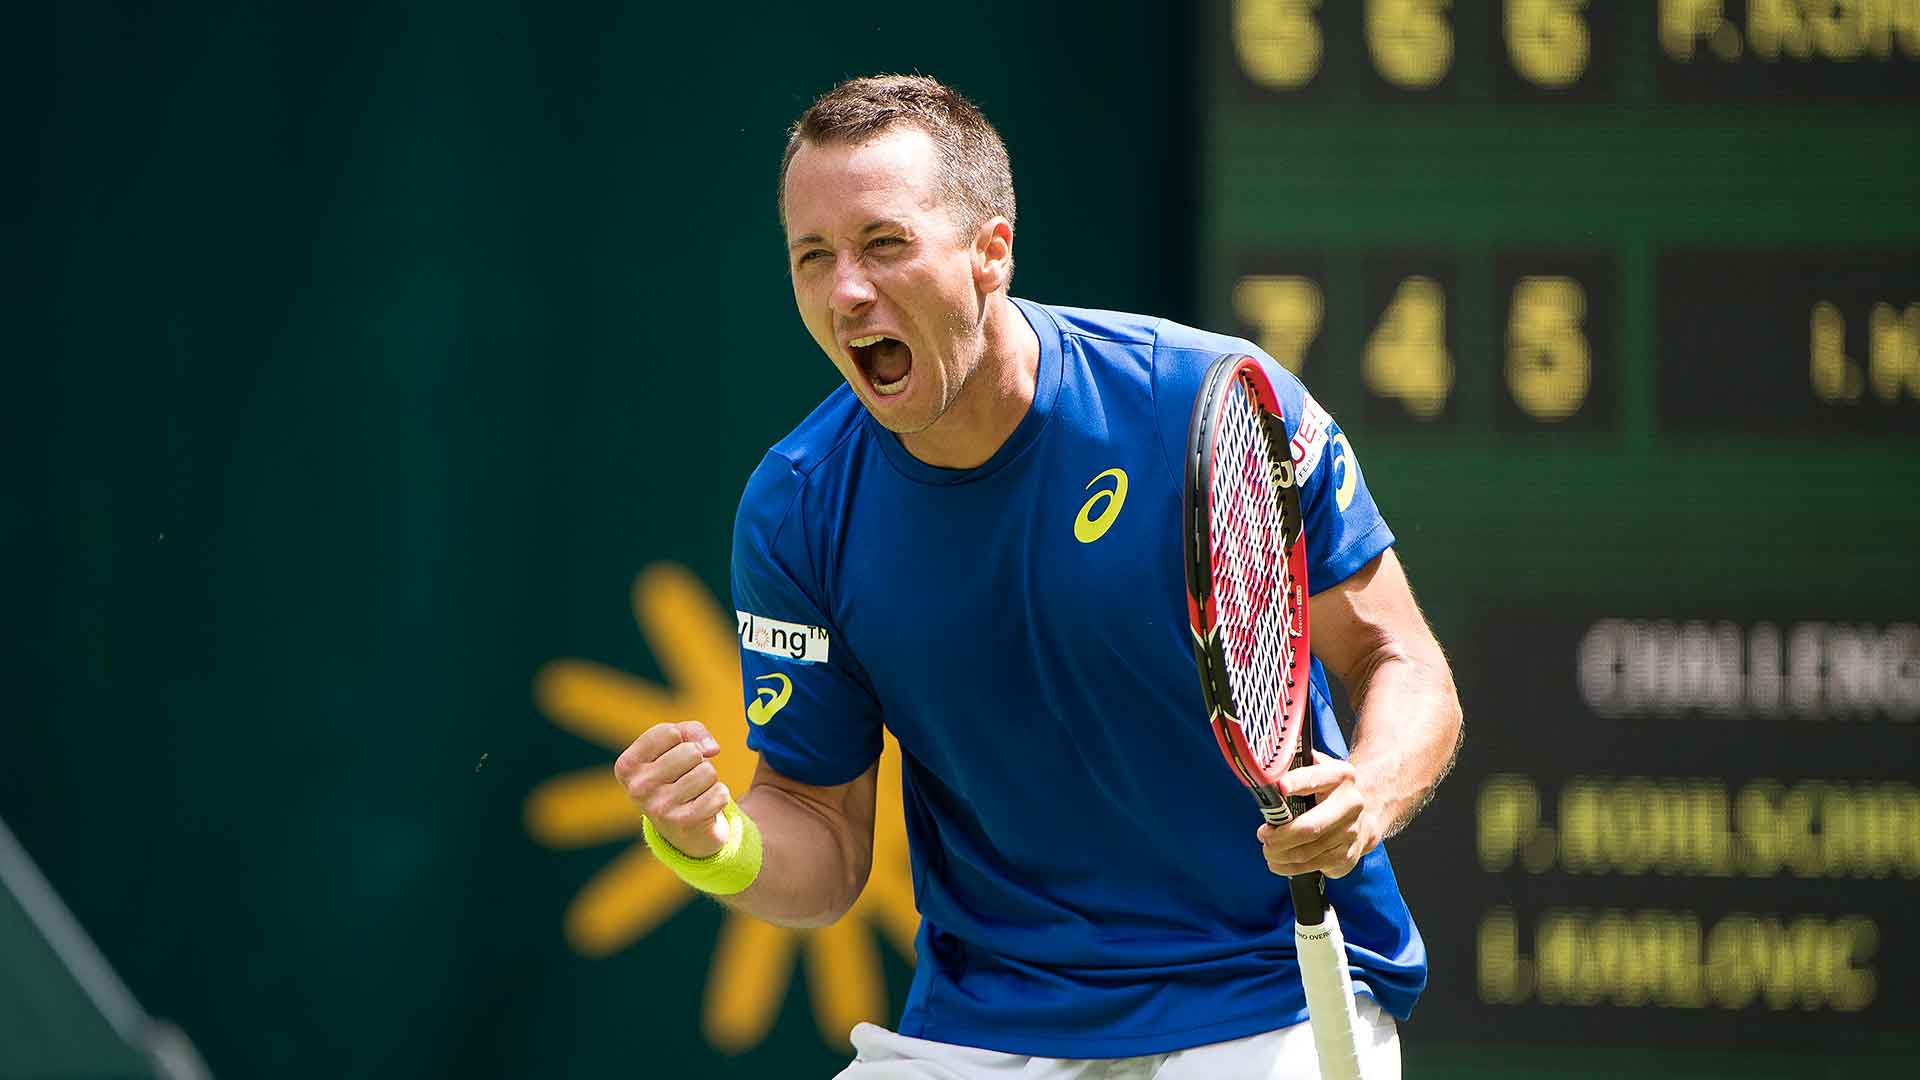 Philipp Kohlschreiber is tied with Michael Stich for third in ATP World Tour match wins among Germans.